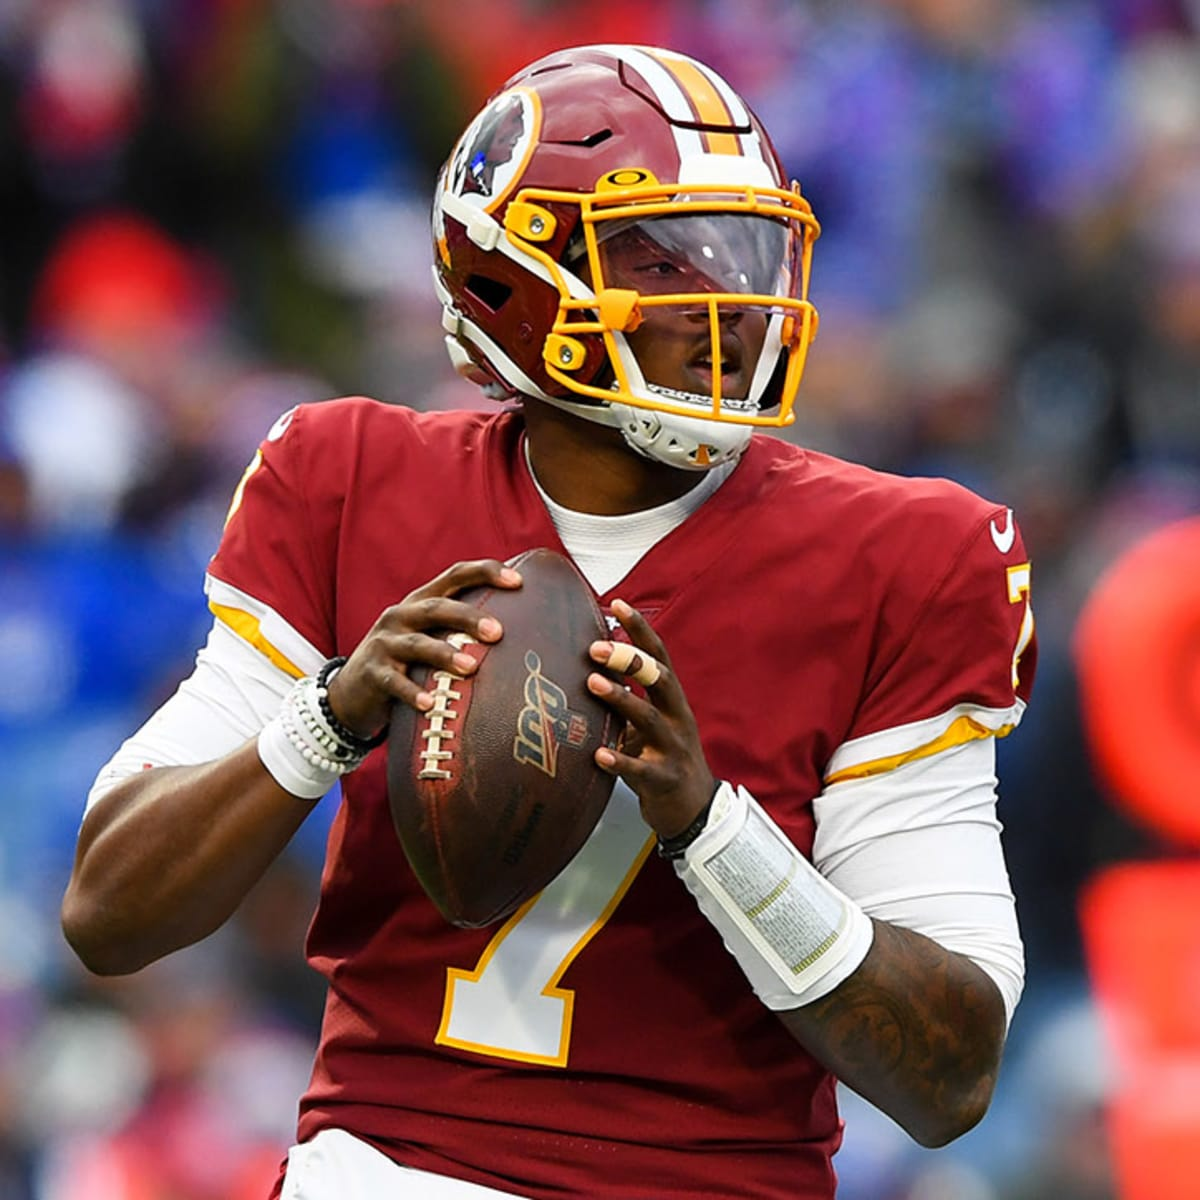 Eagles vs redskins betting preview nfl most valuable cs go skins betting